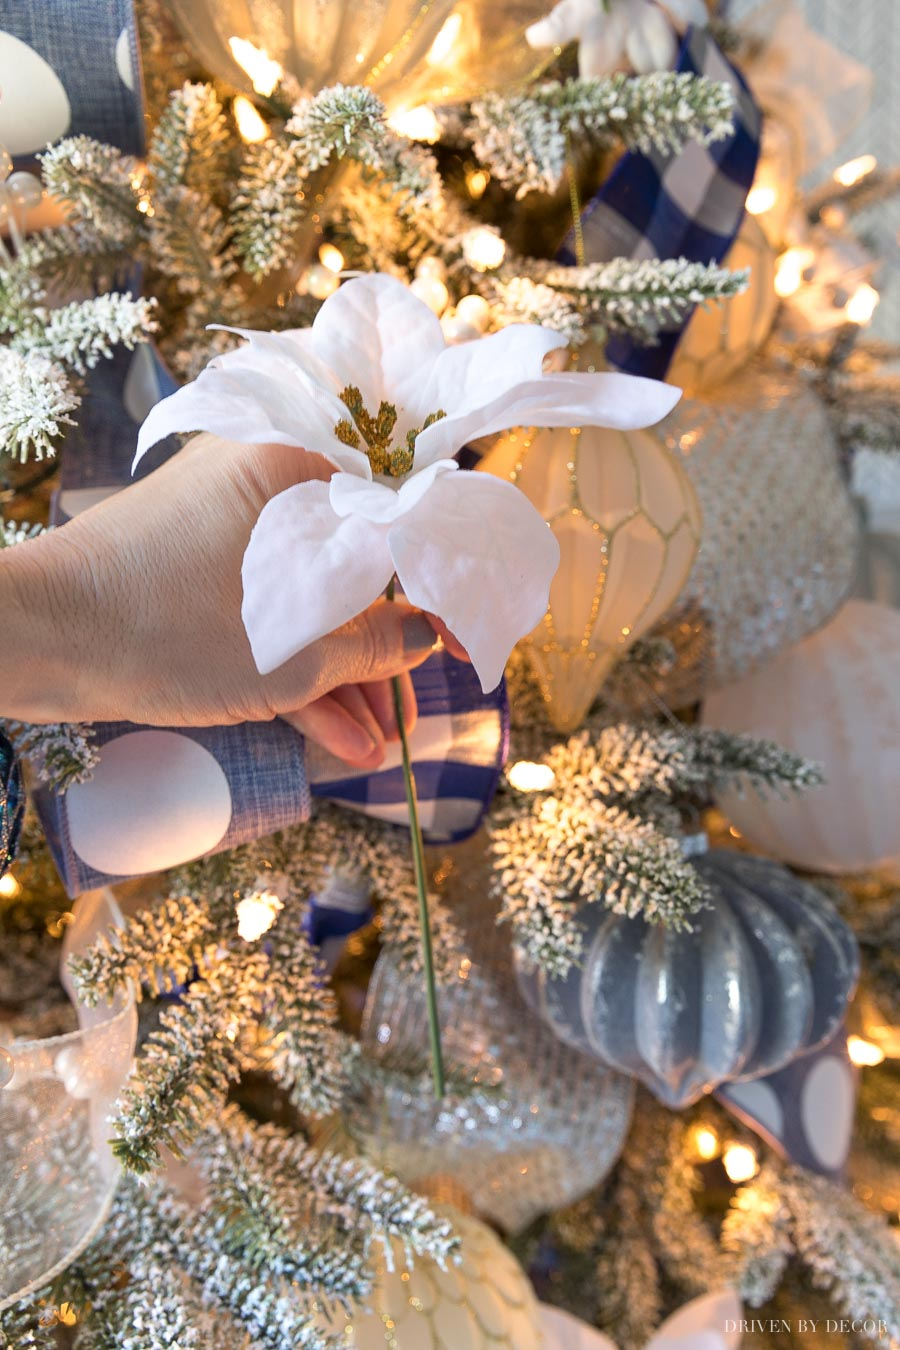 Love how she added these white poinsettias to her Christmas tree!